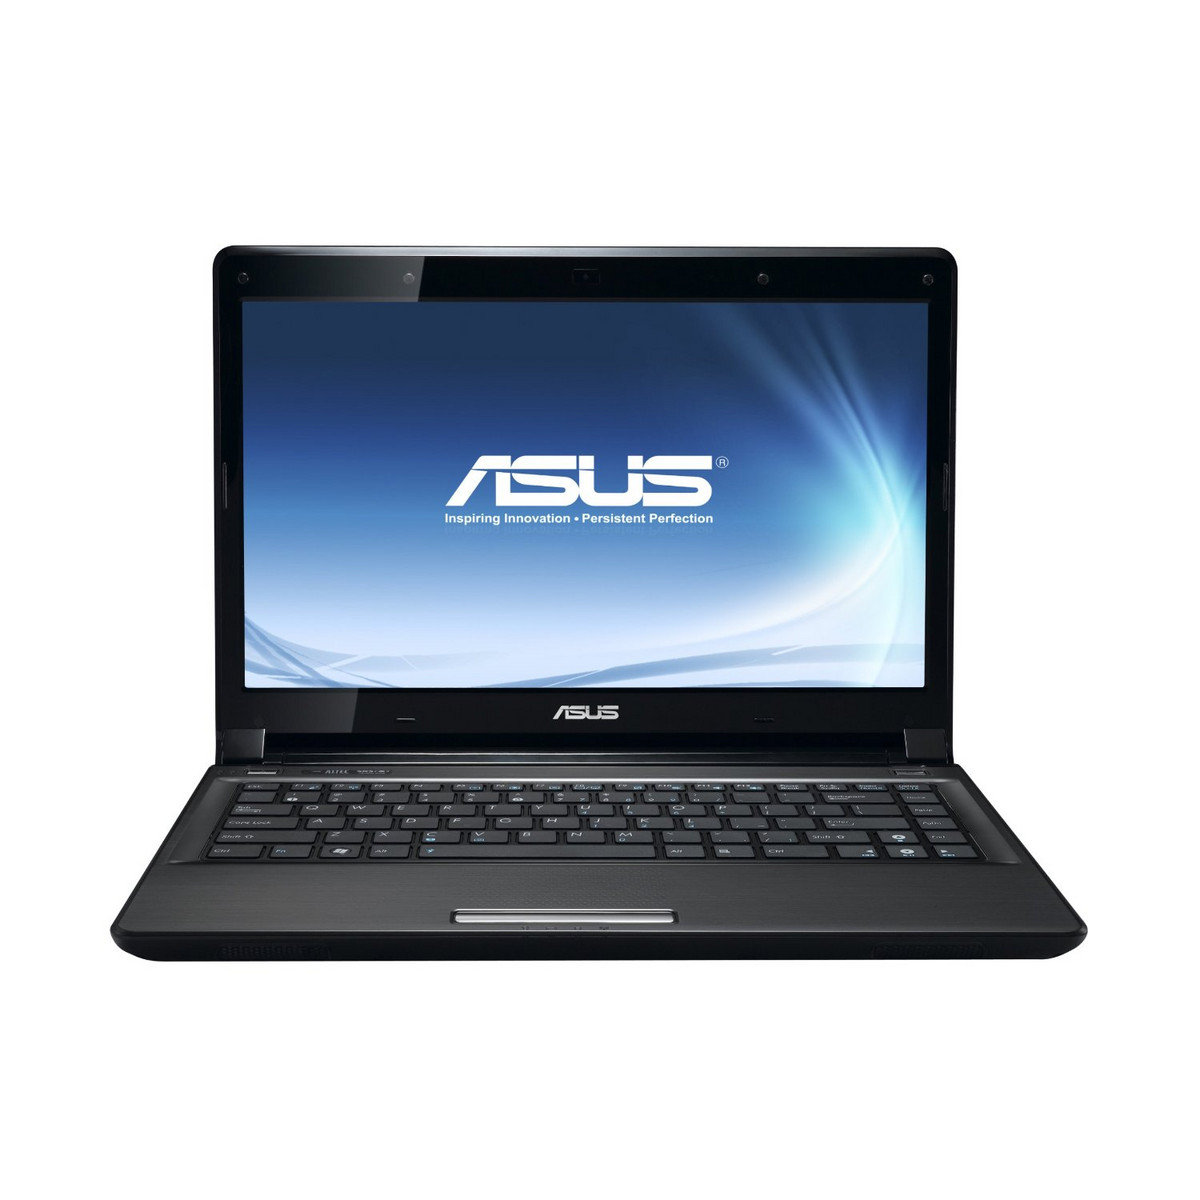 ASUS G51JX NOTEBOOK INTEL TURBO BOOST TECHNOLOGY 64BIT DRIVER